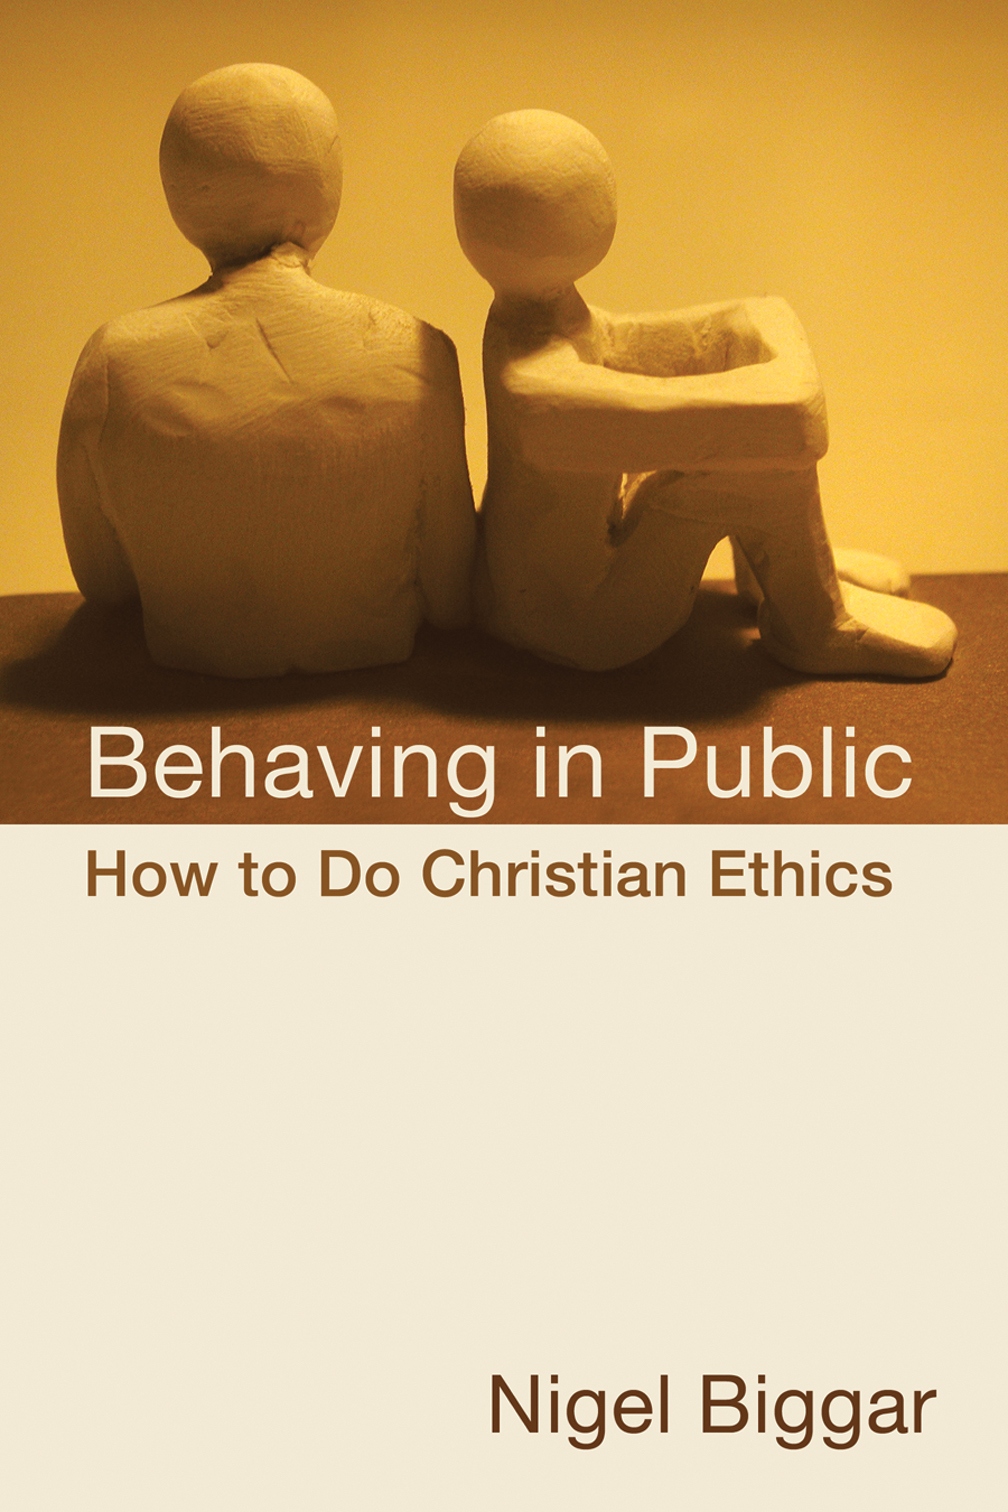 How to behave as a christian